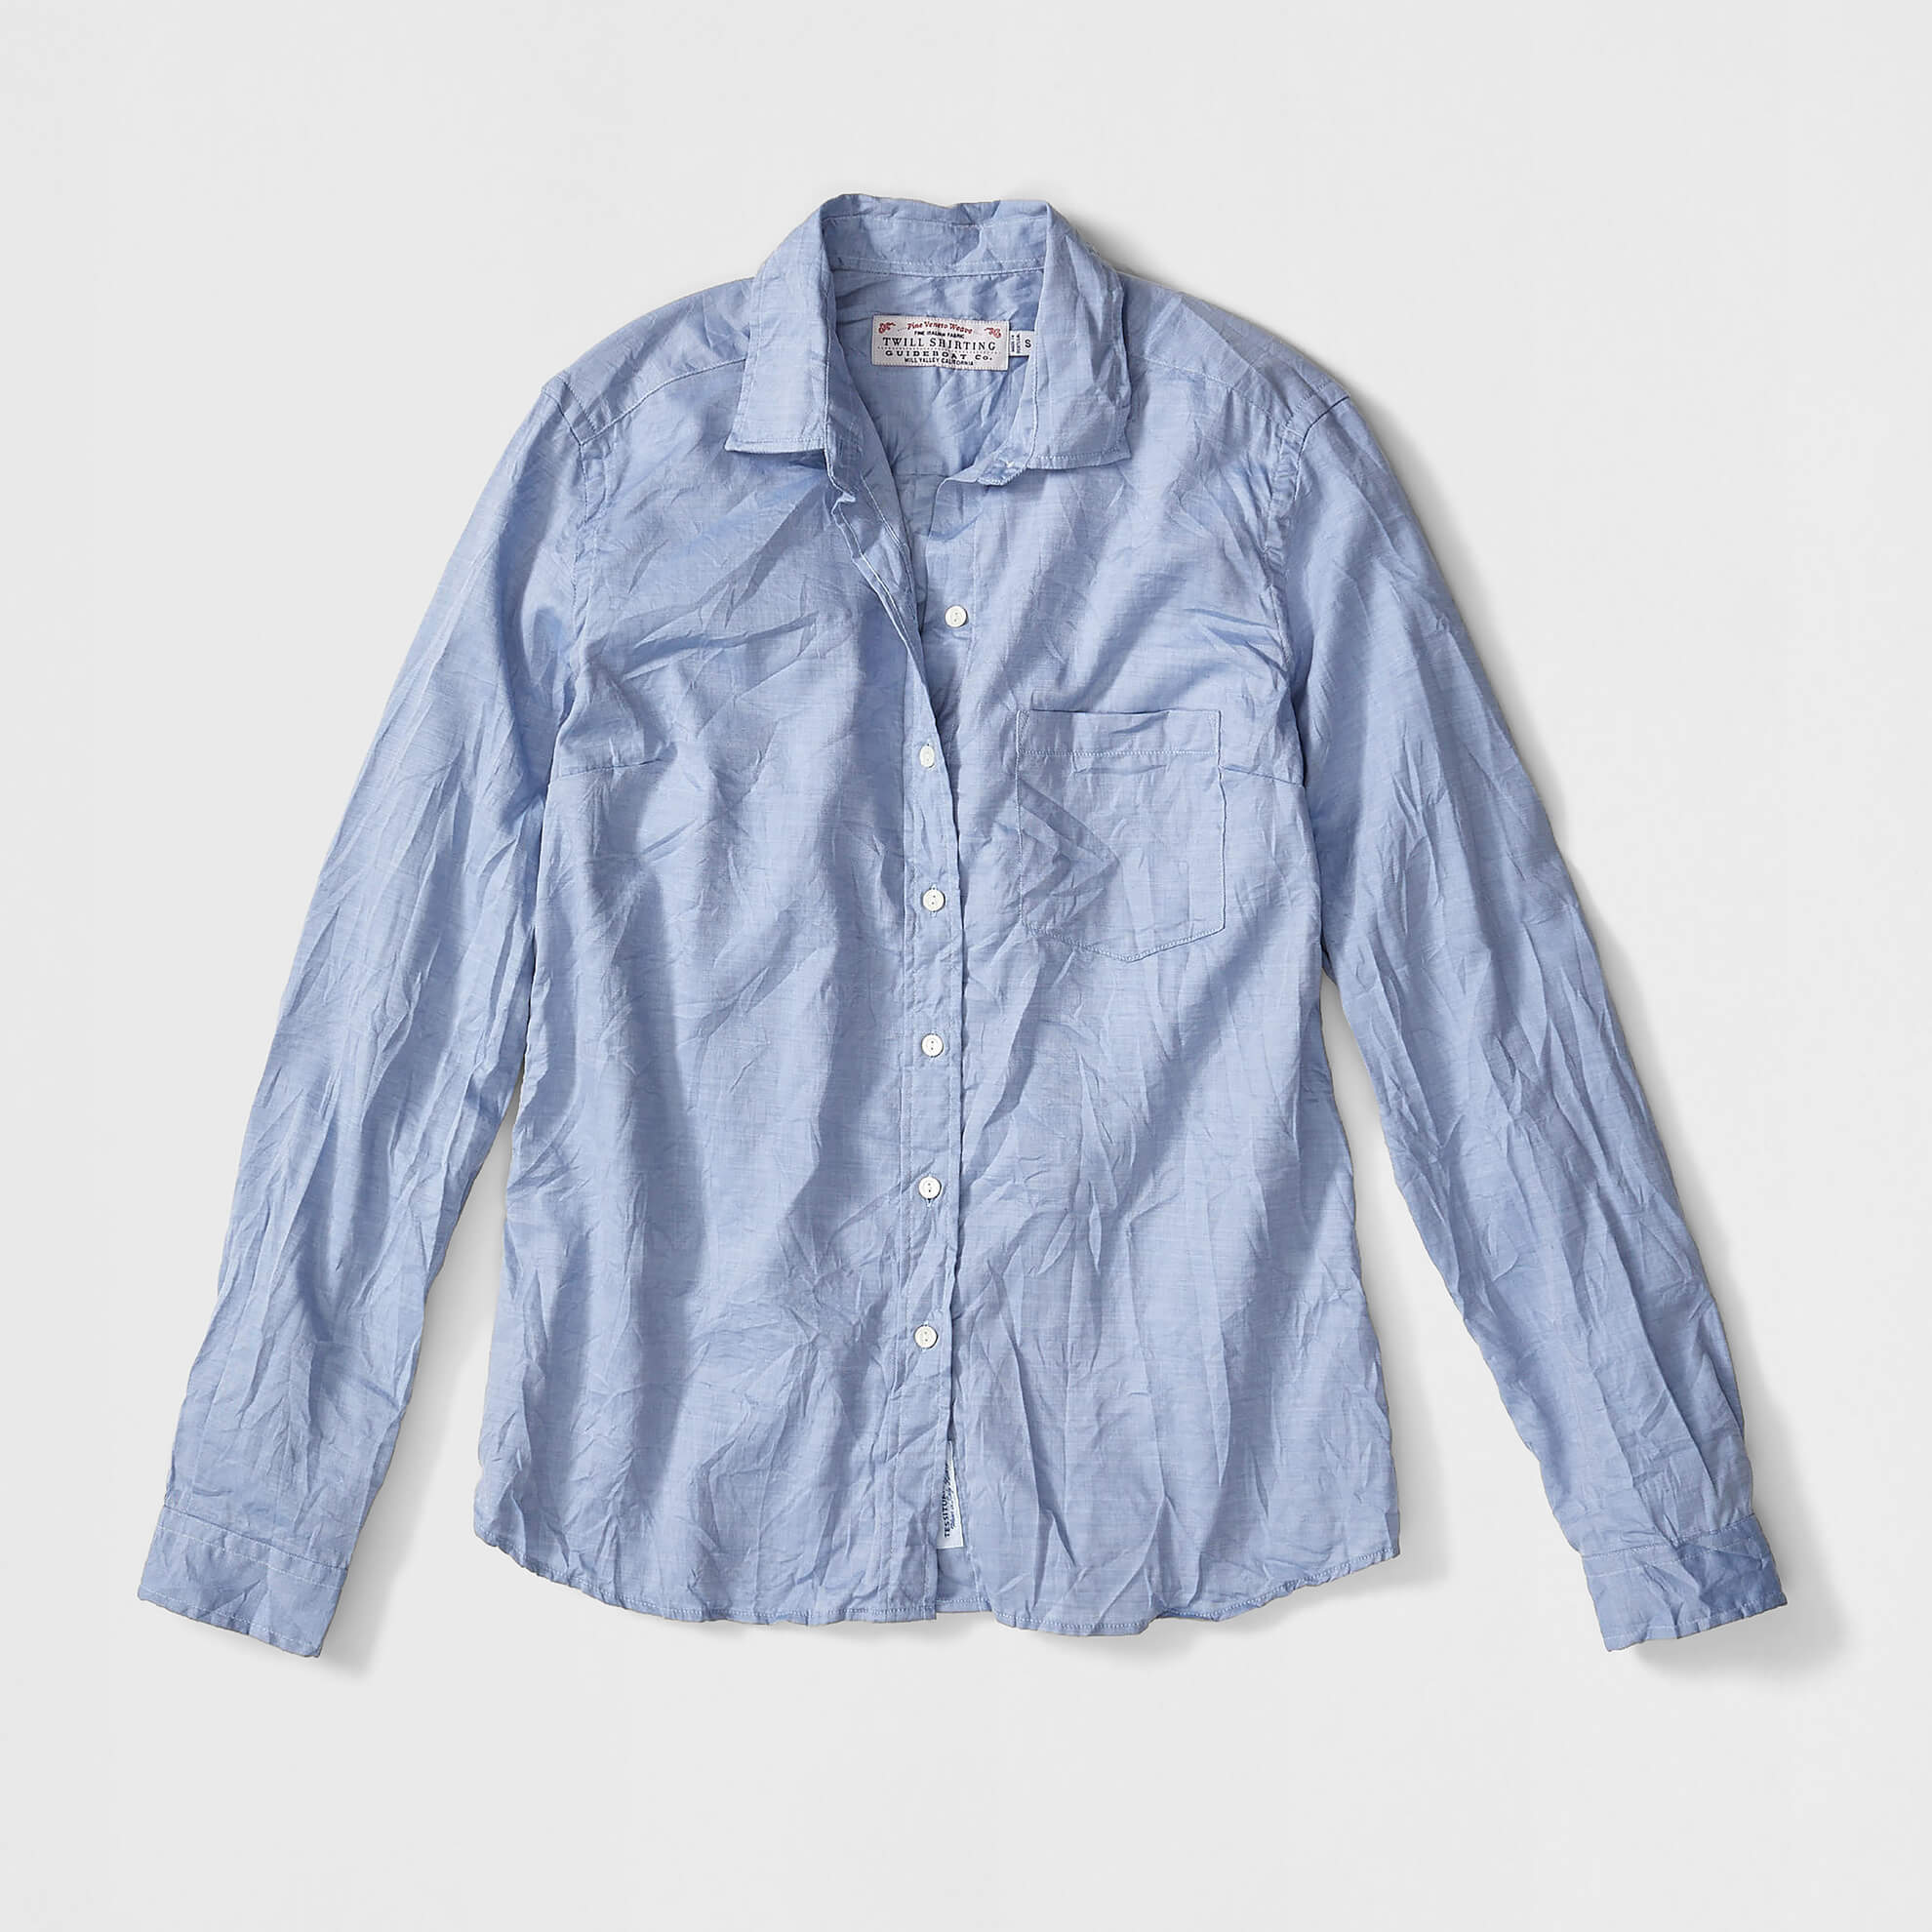 Italian Superfine Twill Shirt